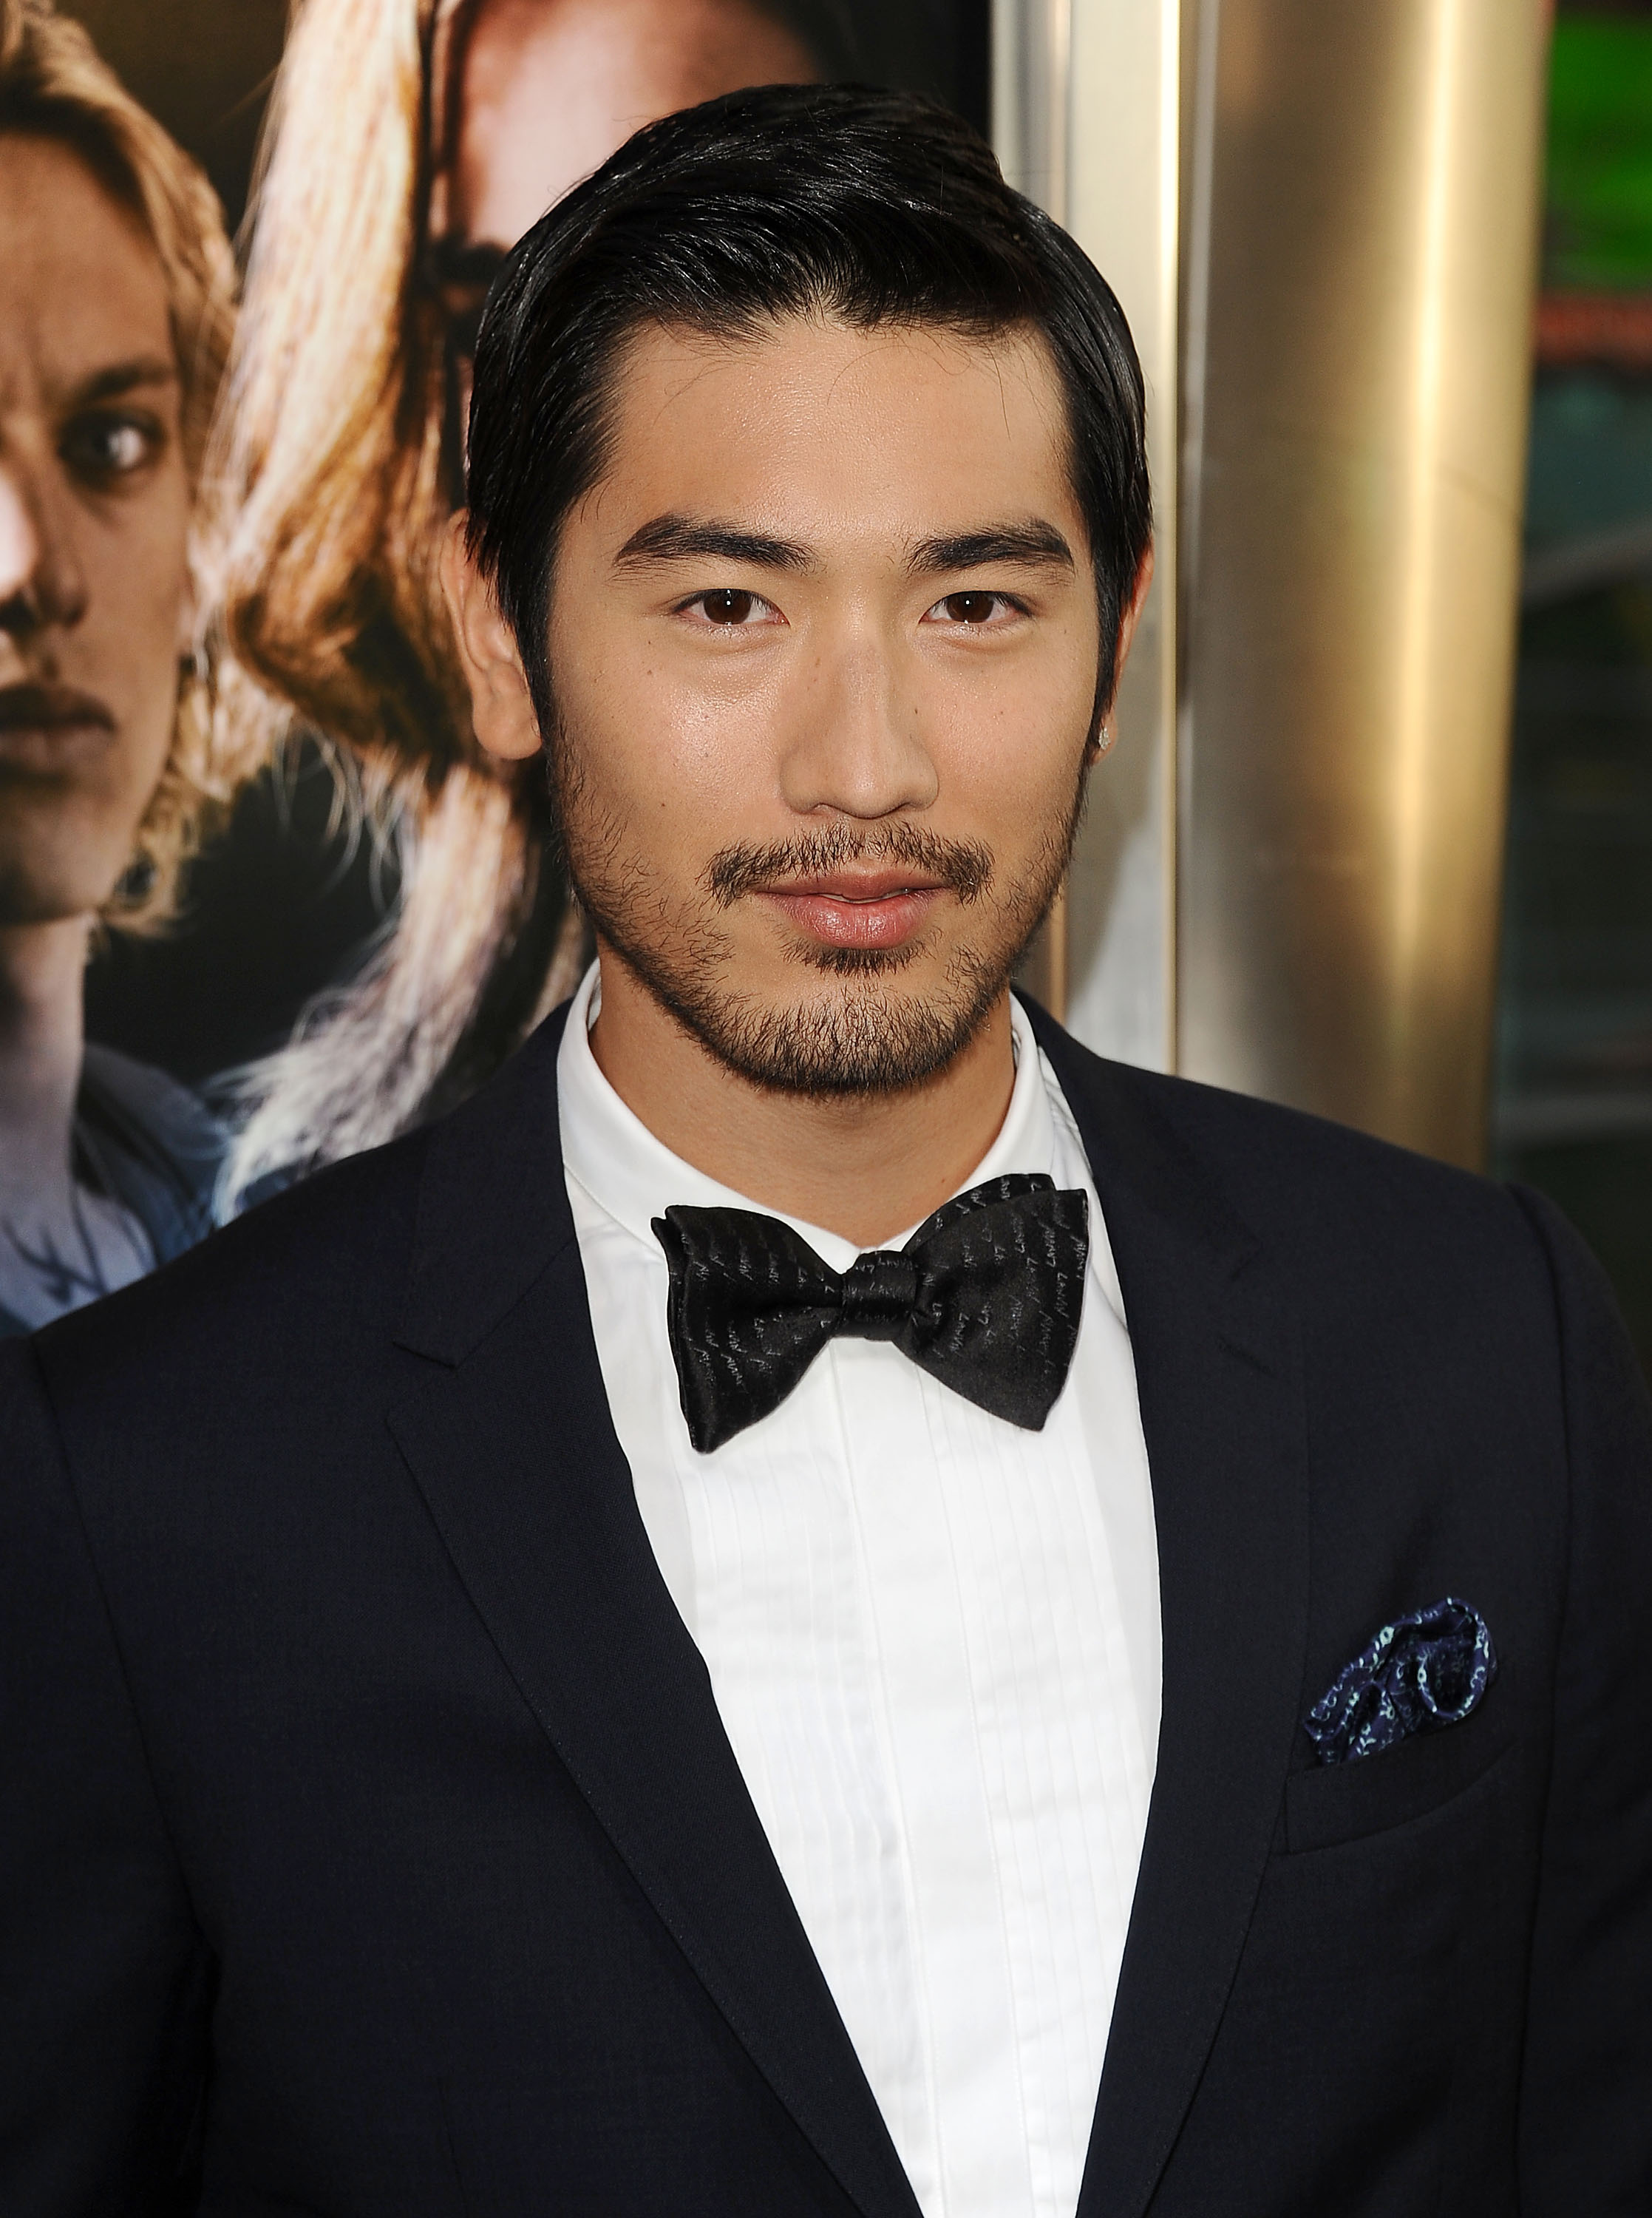 Godfrey Gao attends the premiere of  The Mortal Instruments: City Of Bones  on August 12, 2013 in Hollywood, California.